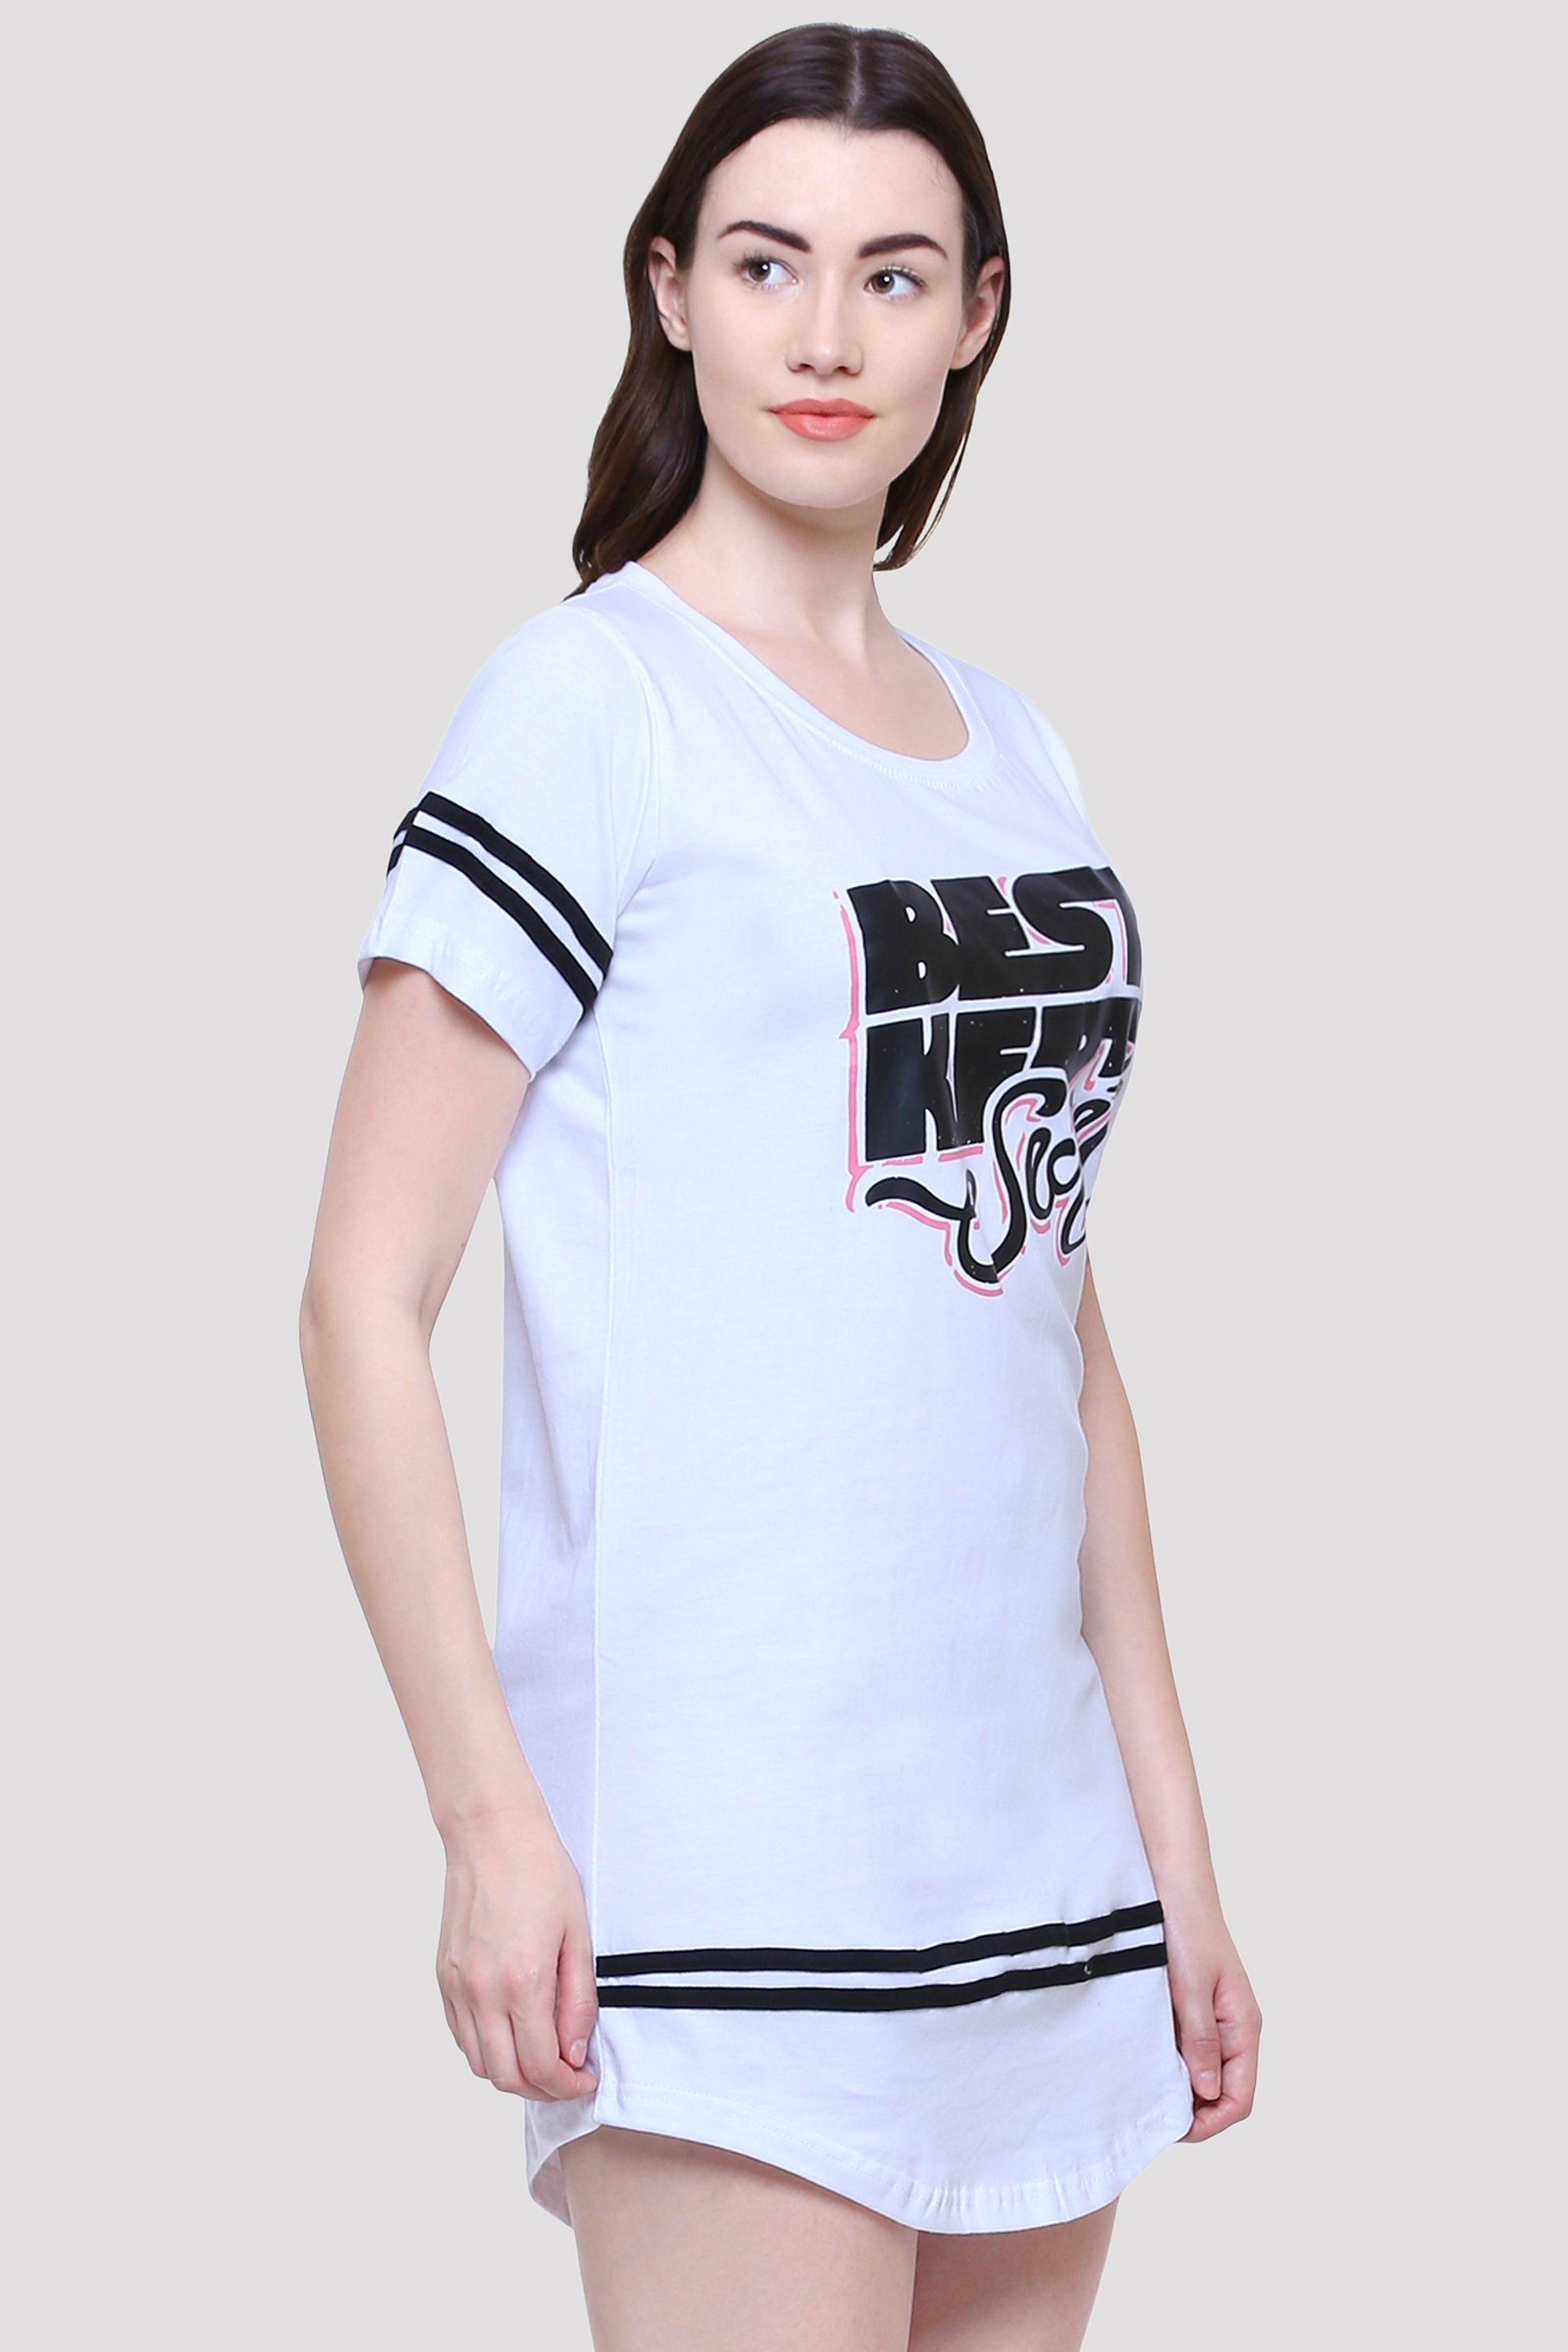 Best Kept Secret White T-Shirt Dress for Women